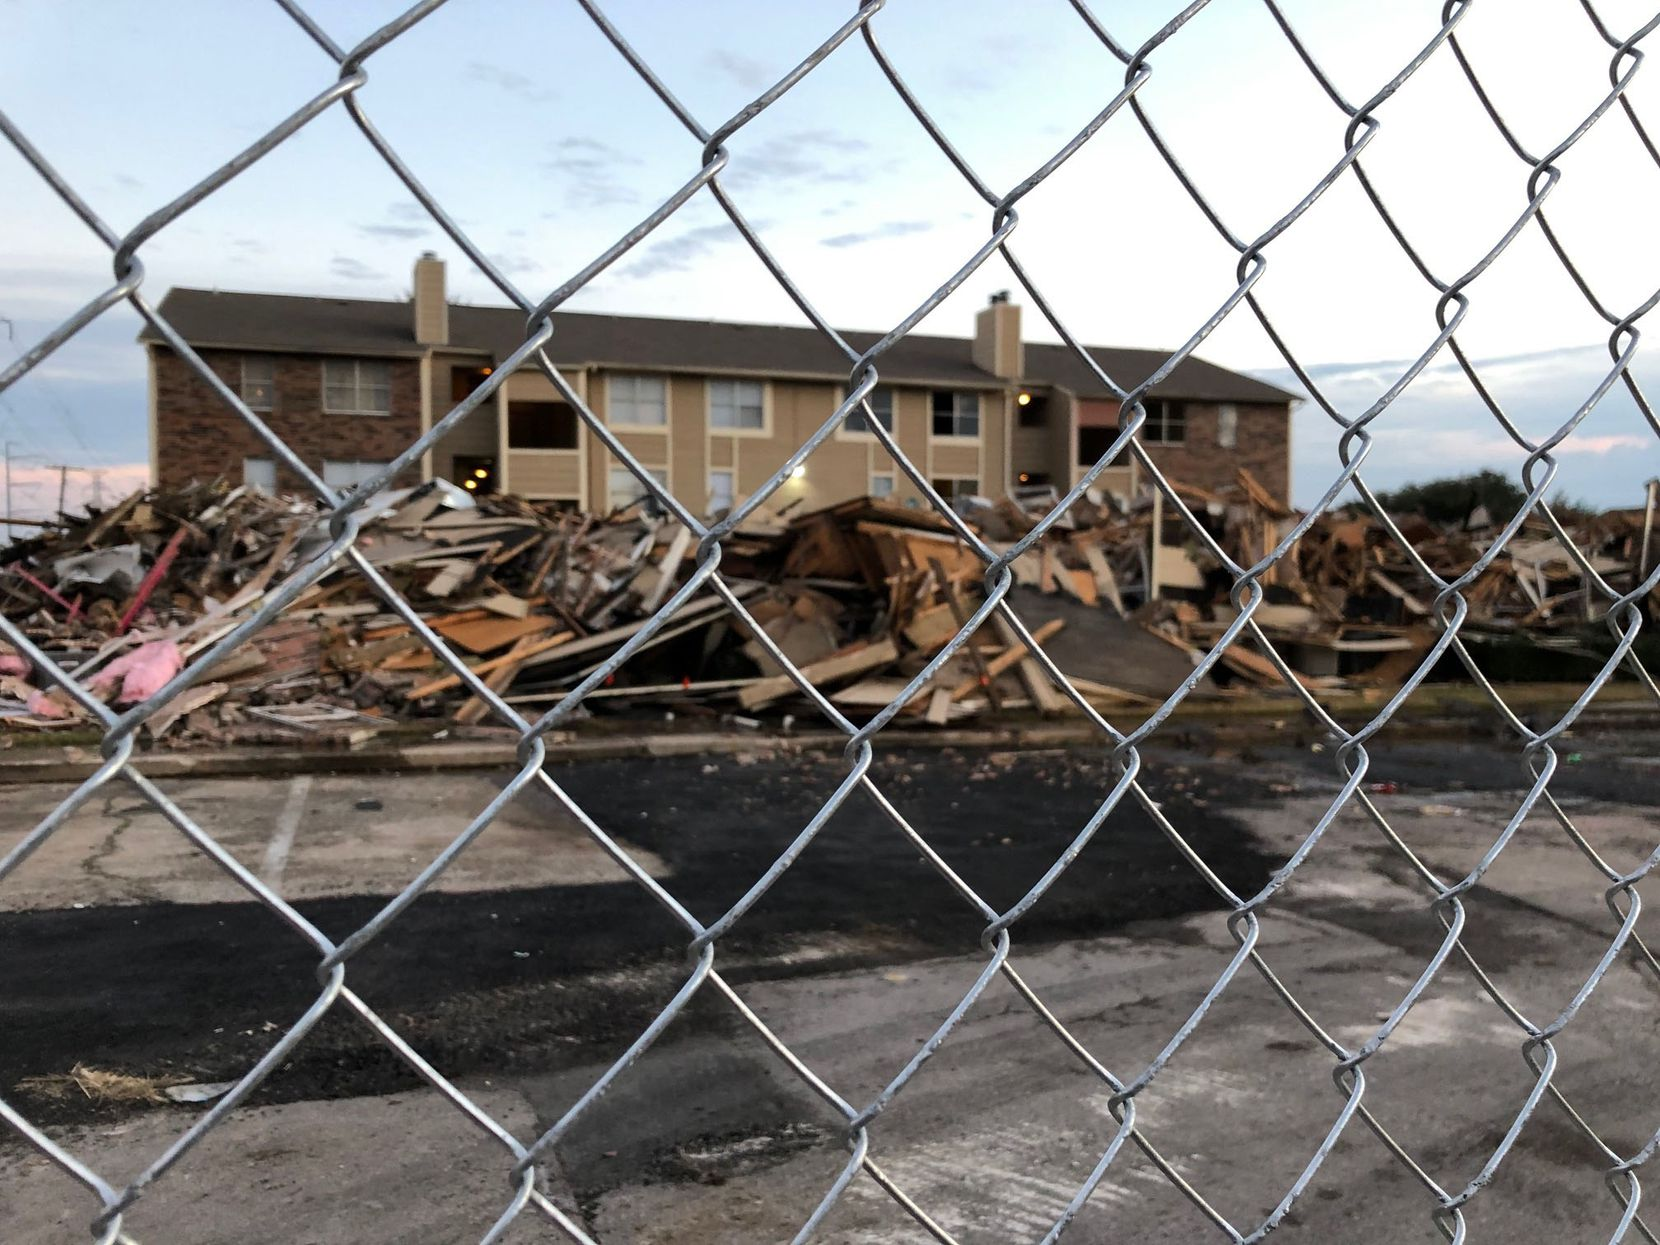 The burned Meadows at Ferguson Building F was demolished Wednesday afternoon.